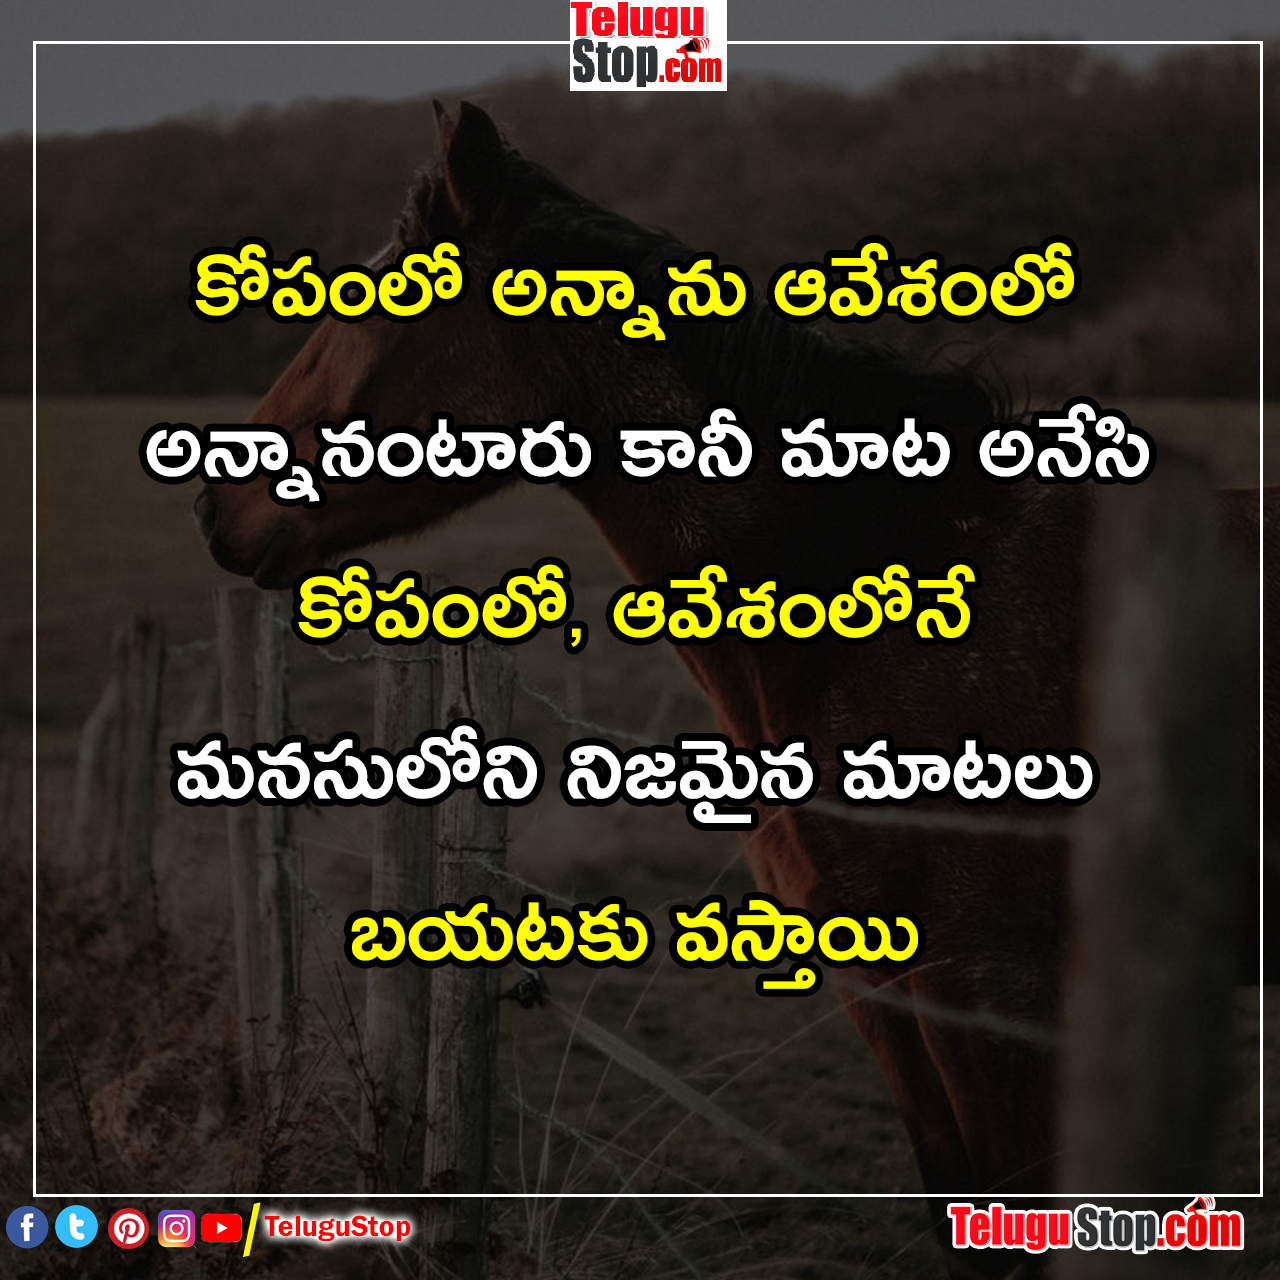 The truths come out in anger and rage quotes in telugu inspirational quotes